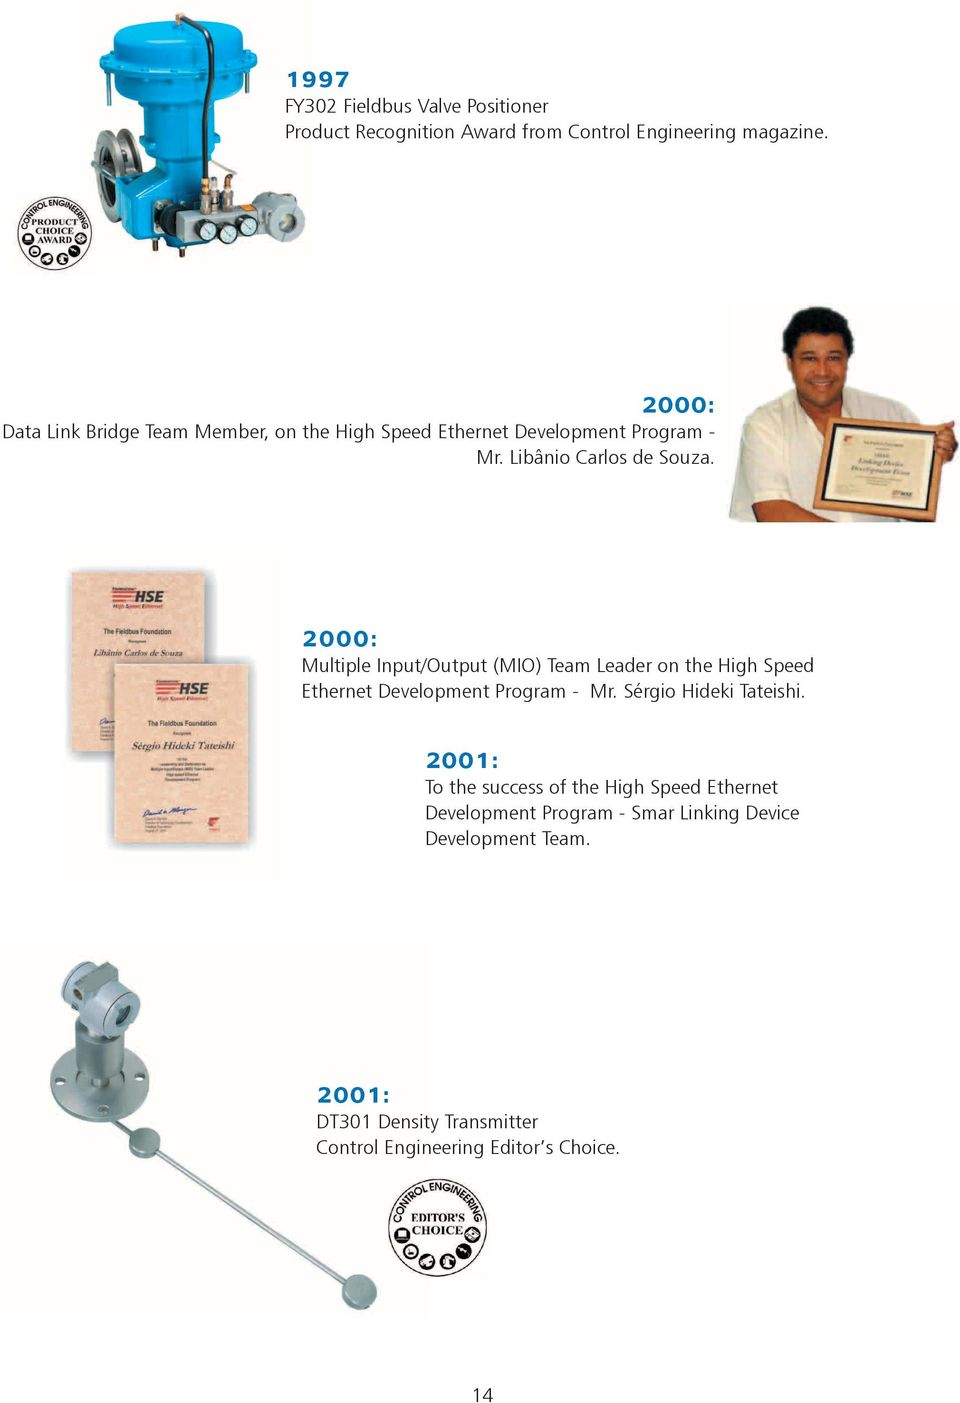 2000: Multiple Input/Output (MIO) Team Leader on the High Speed Ethernet Development Program - Mr. Sérgio Hideki Tateishi.